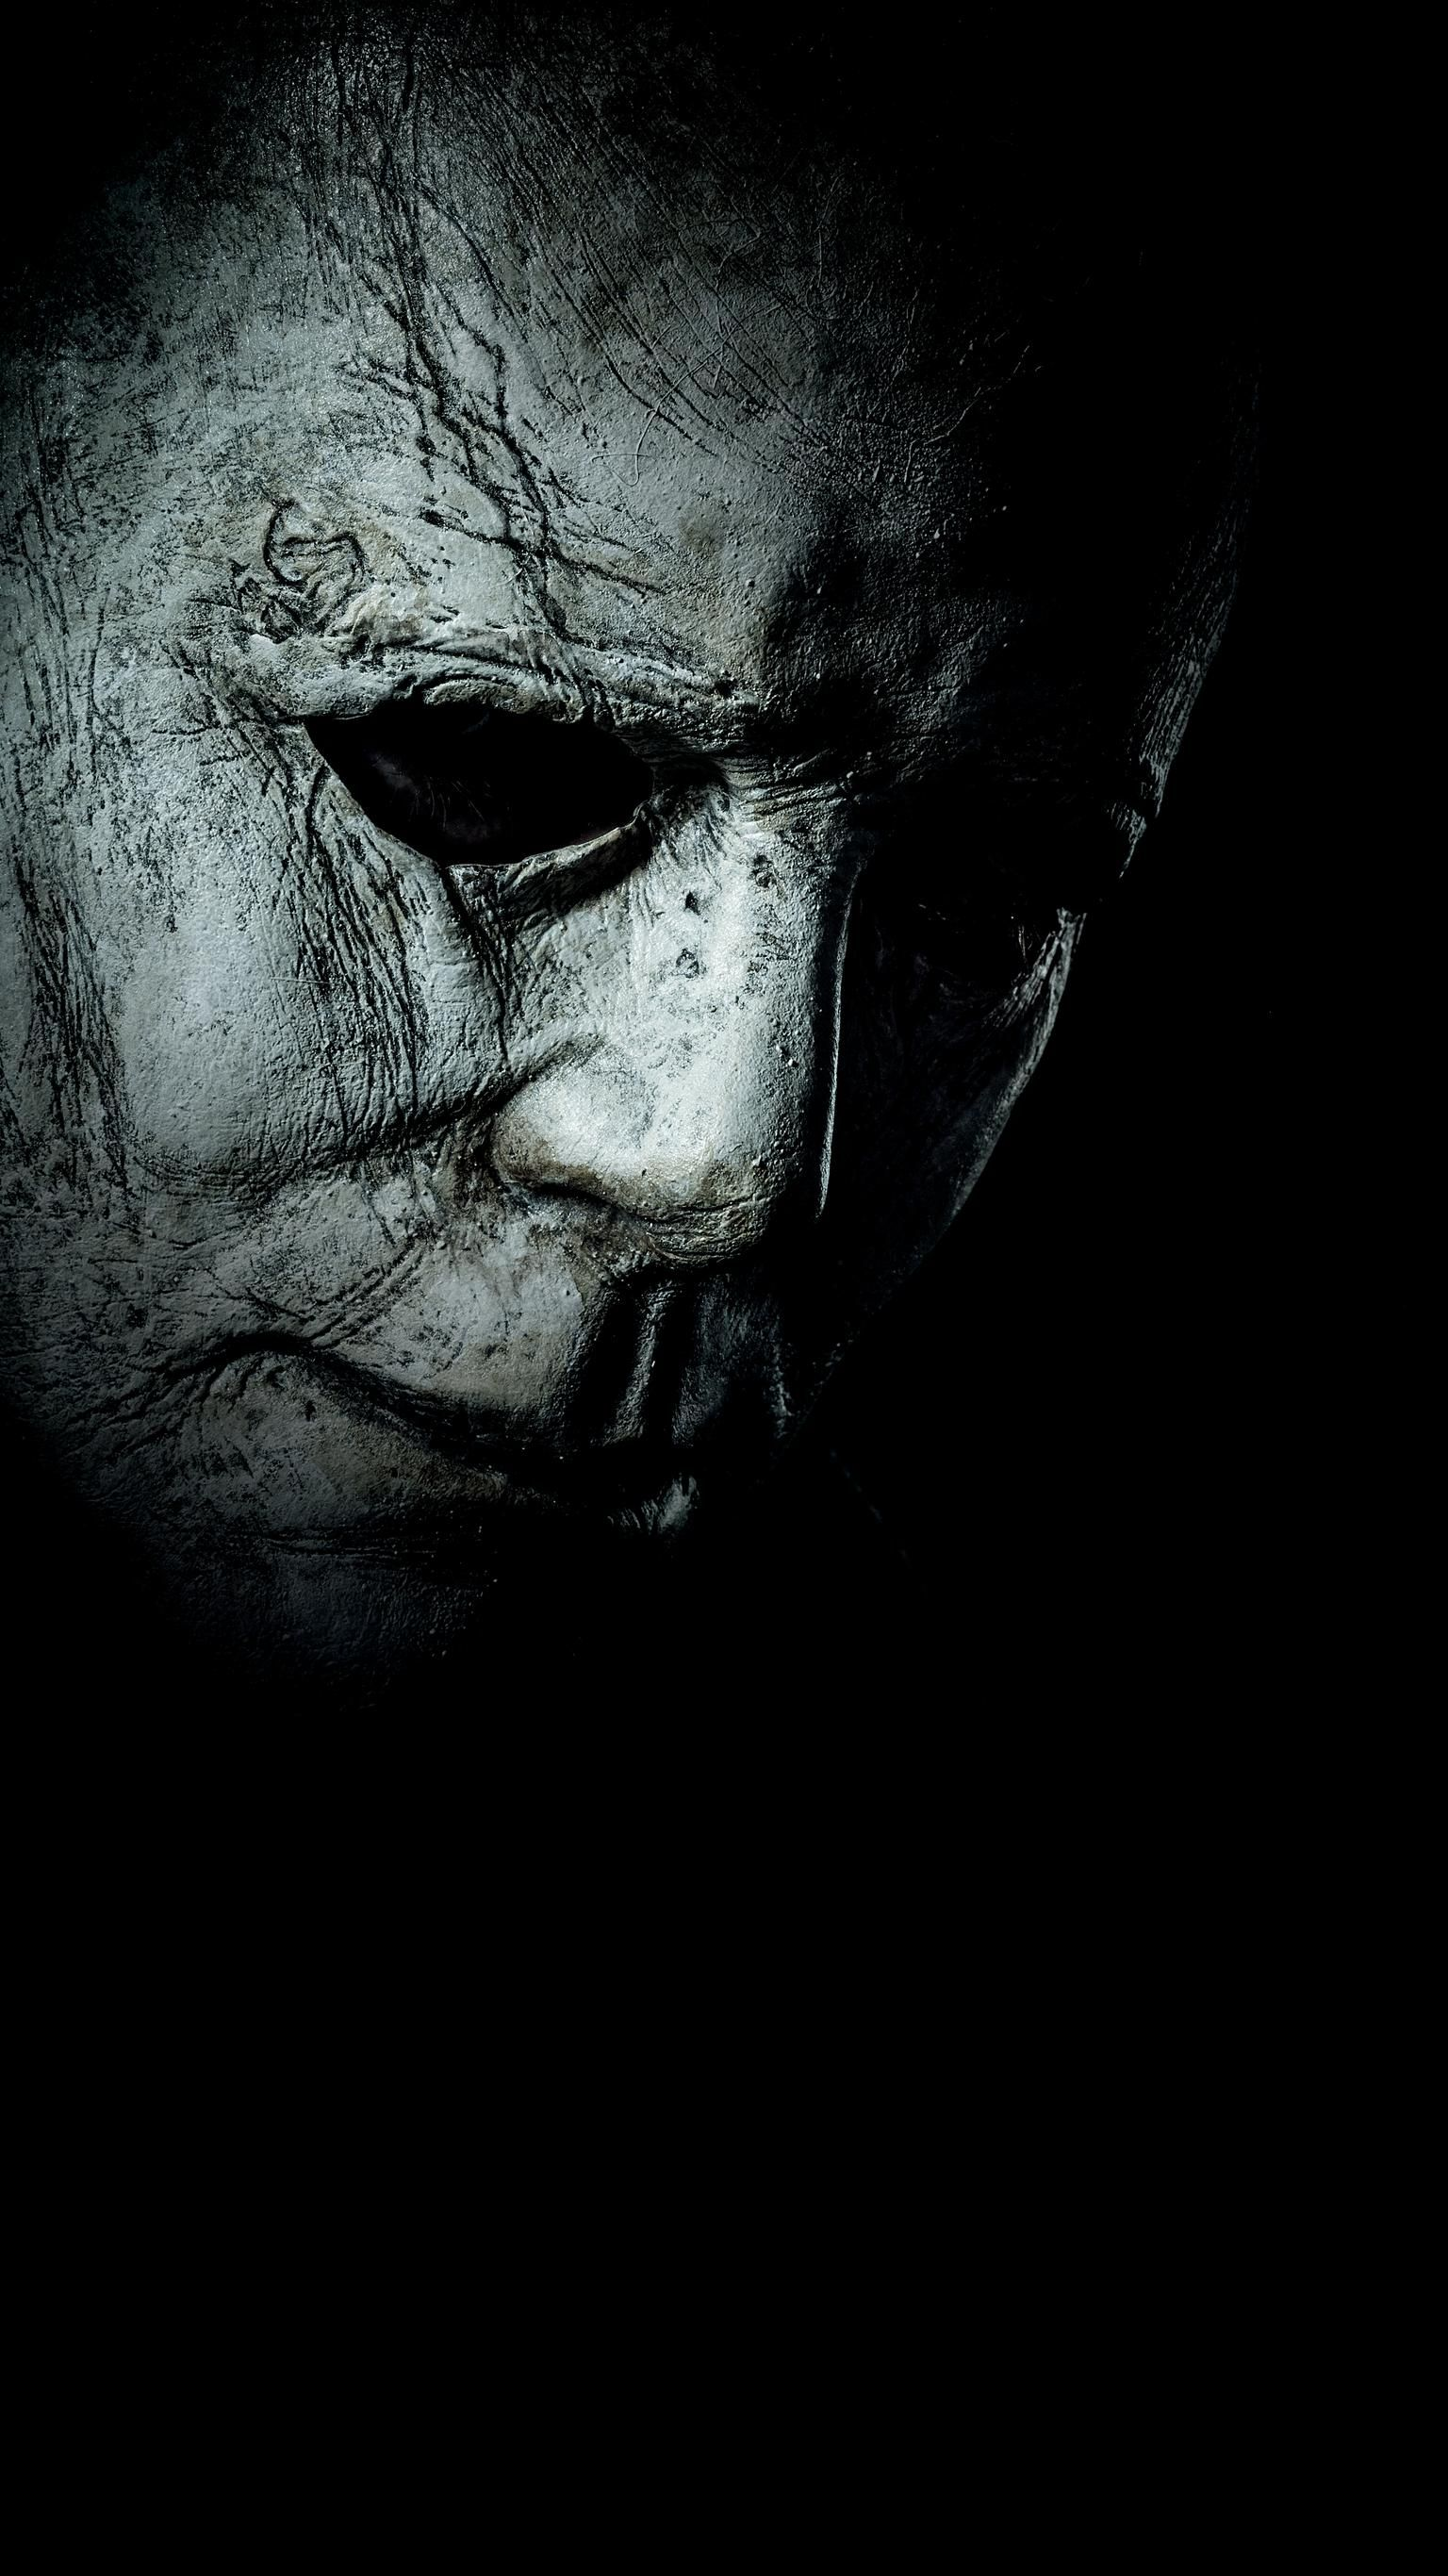 Halloween 2018 Phone Wallpaper Moviemania Horror Wallpapers Hd Horror Photos Horror Movie Icons